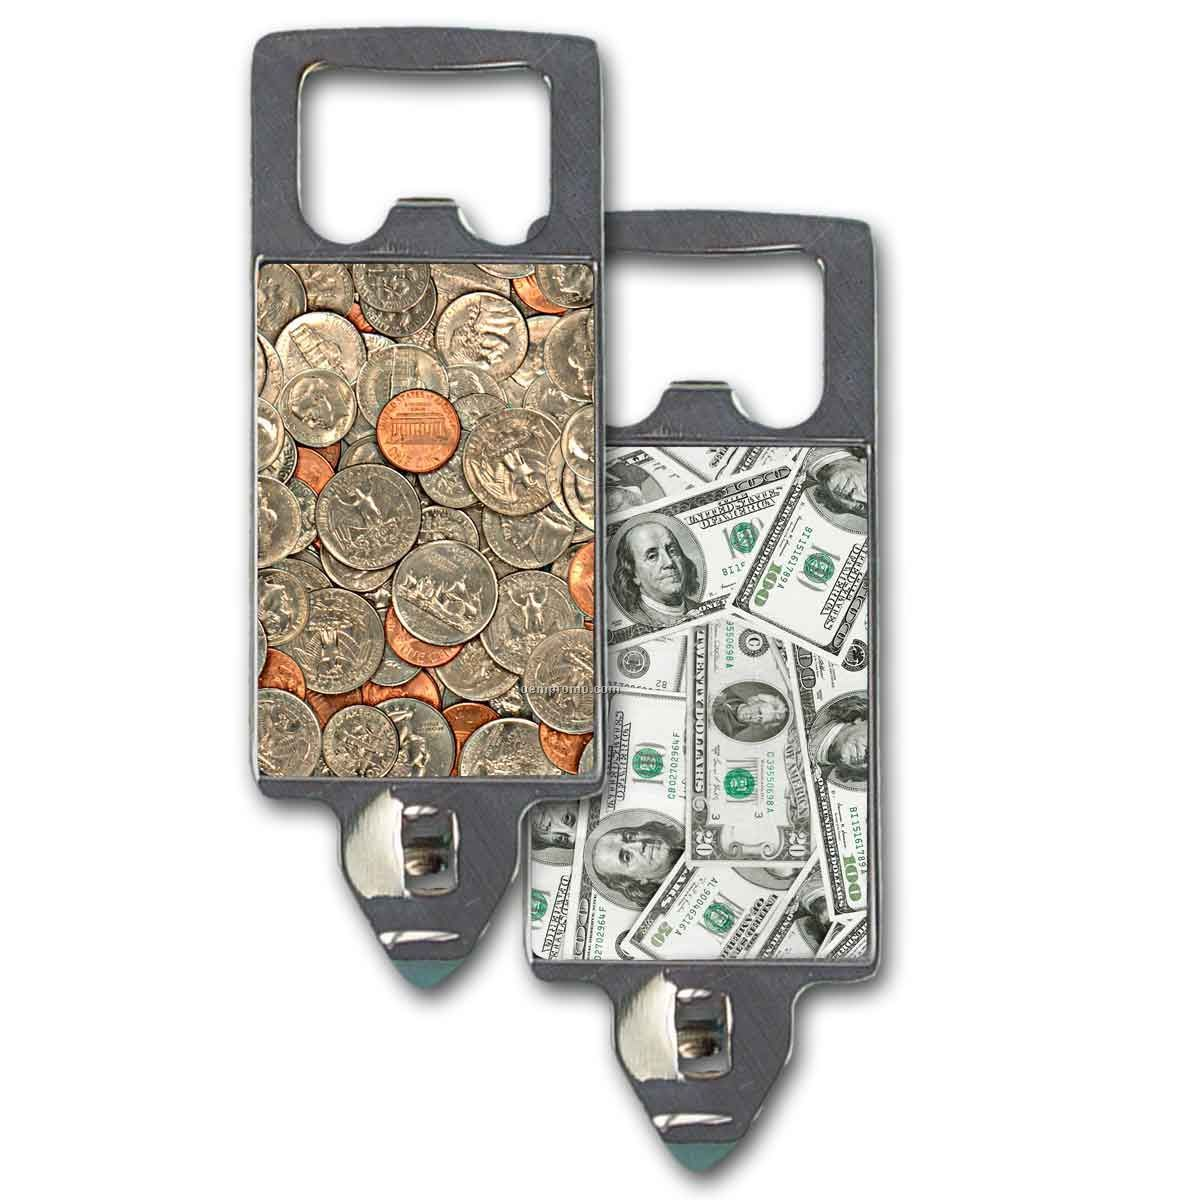 2 In 1 Can And Bottle Opener W/ Animated Dollars And Cents Images (Blank)